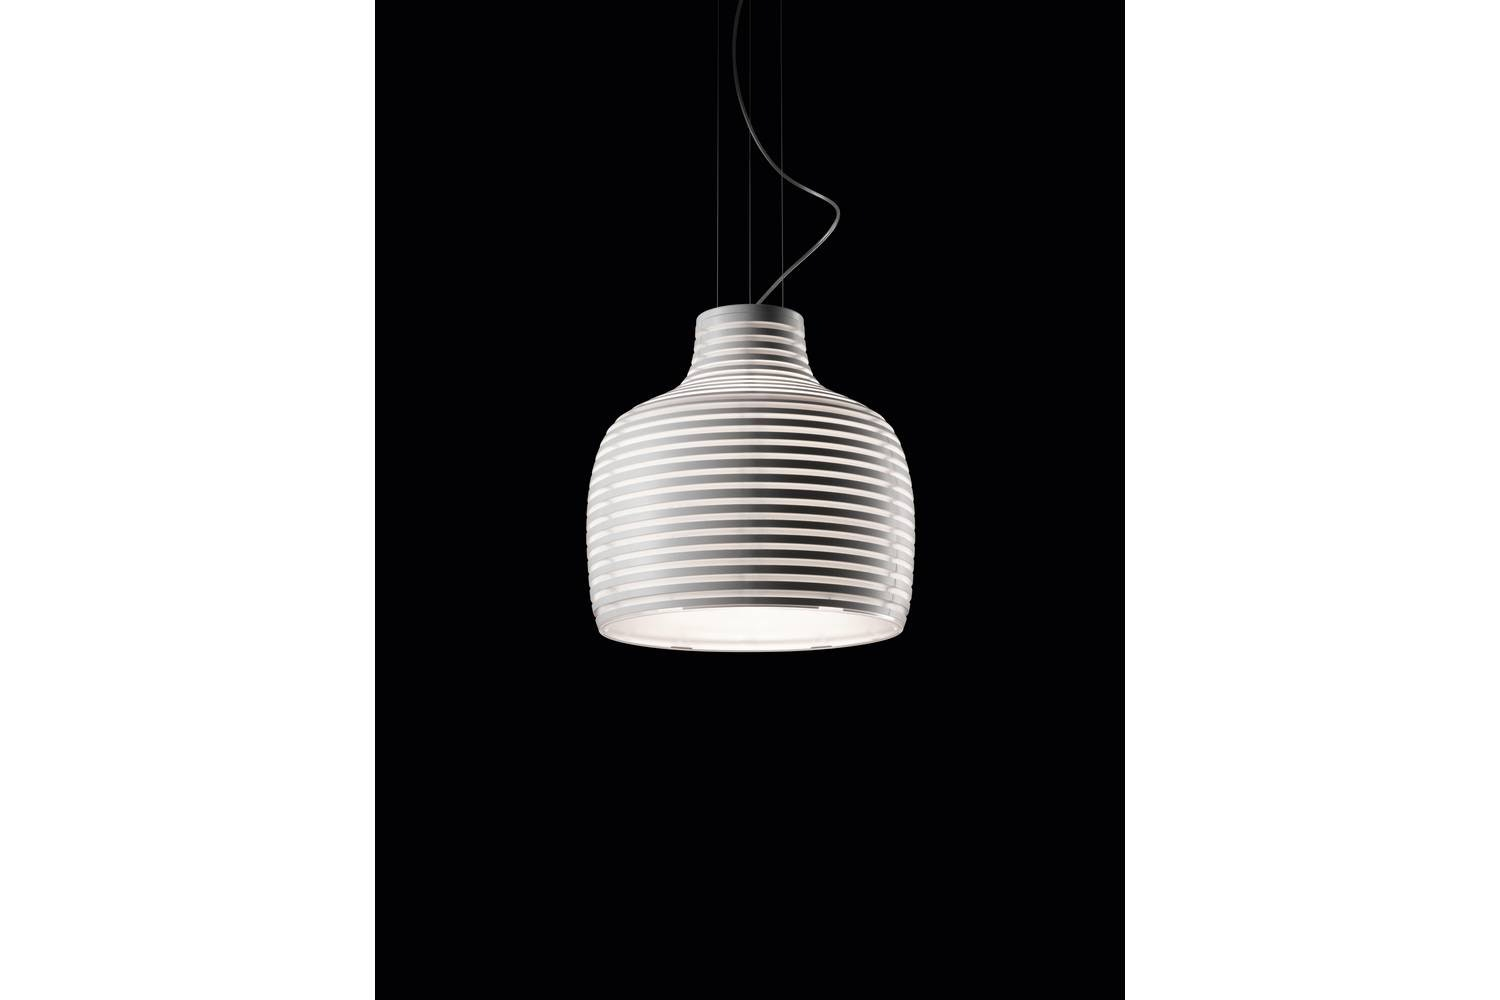 Behive Suspension Lamp by Werner Aisslinger for Foscarini